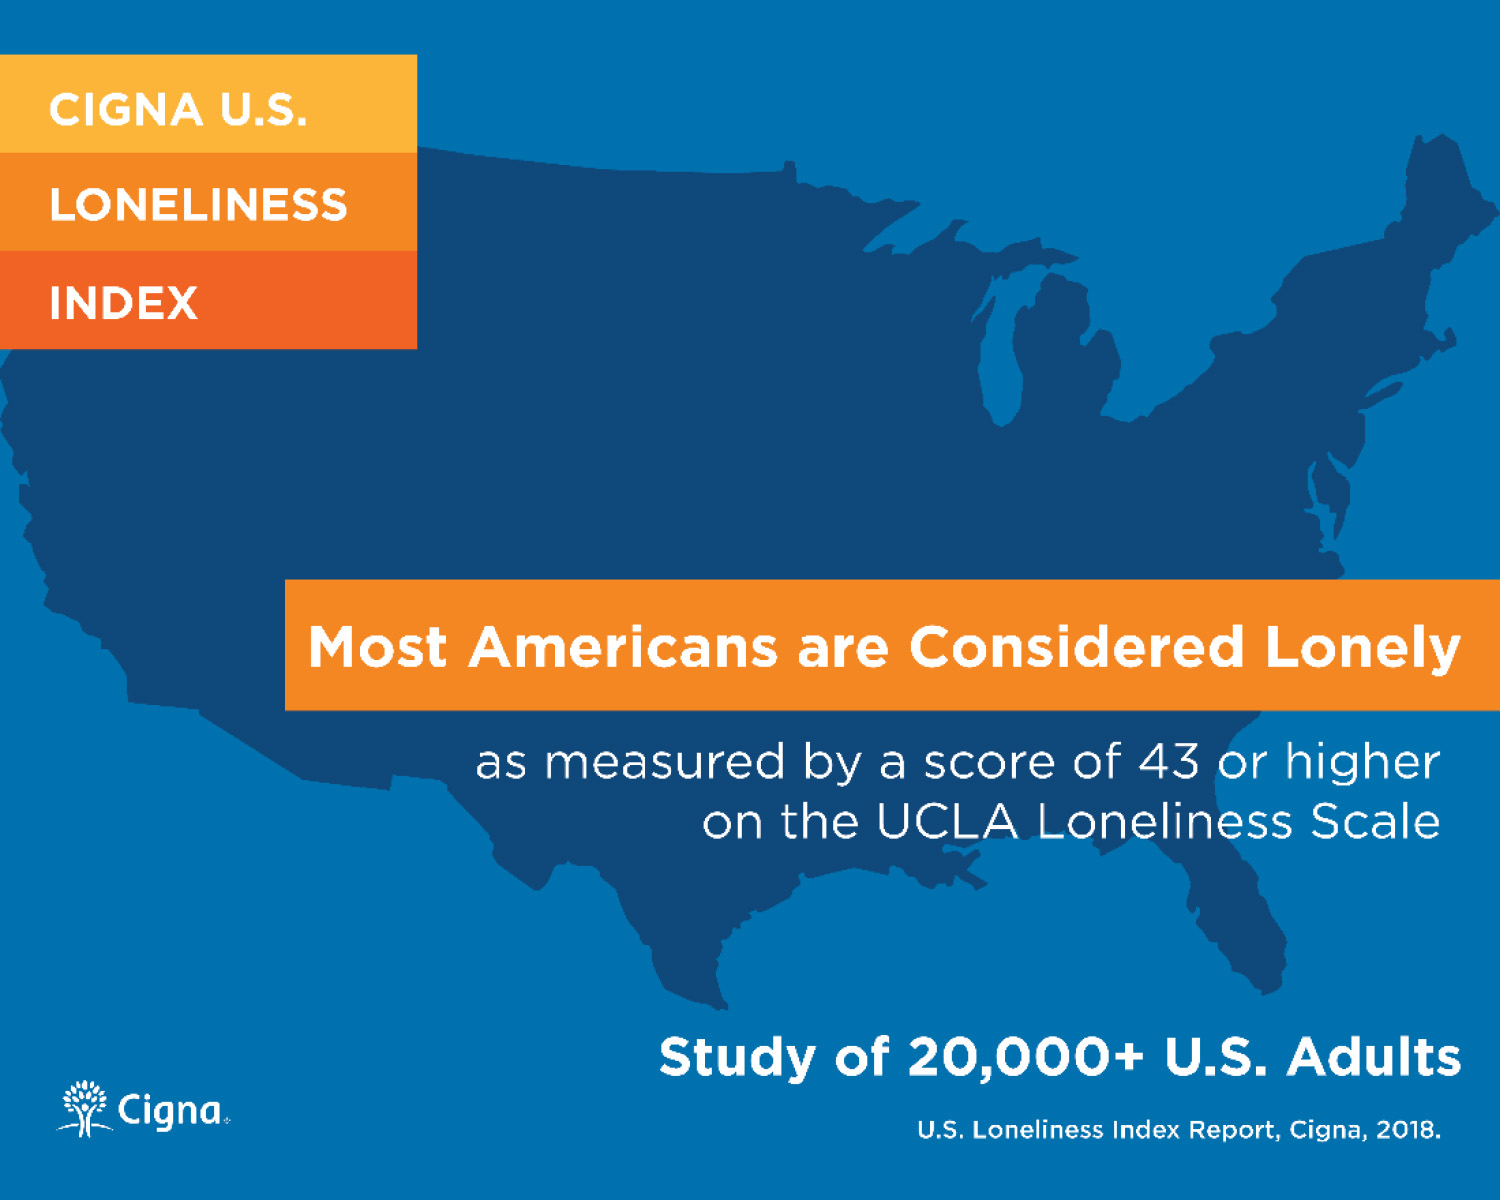 U.S. Loneliness Index Infographic